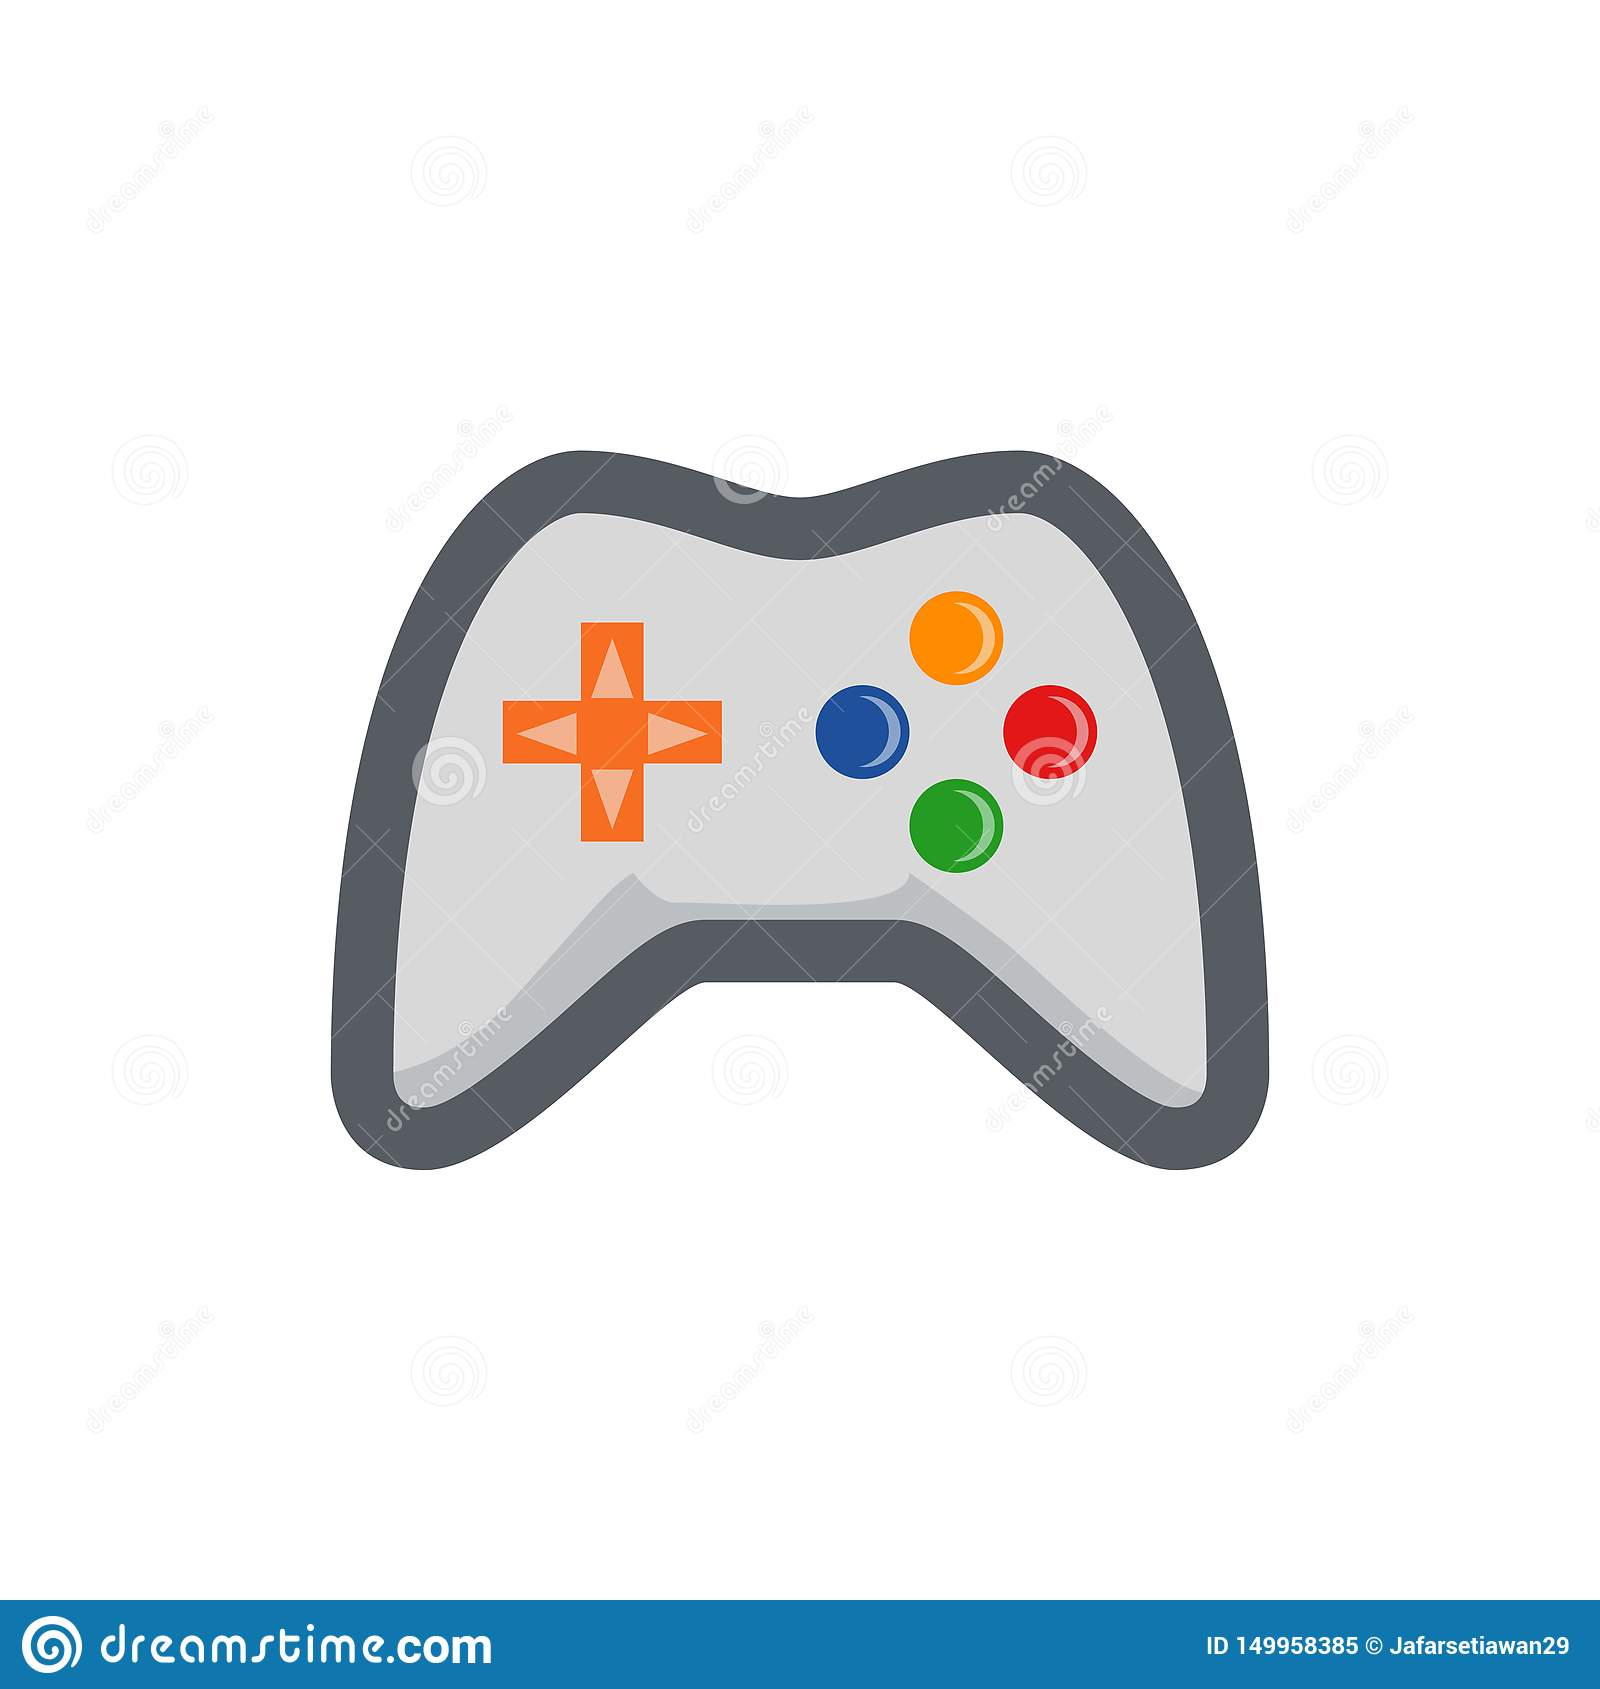 Colored game icons for dark backgrounds,